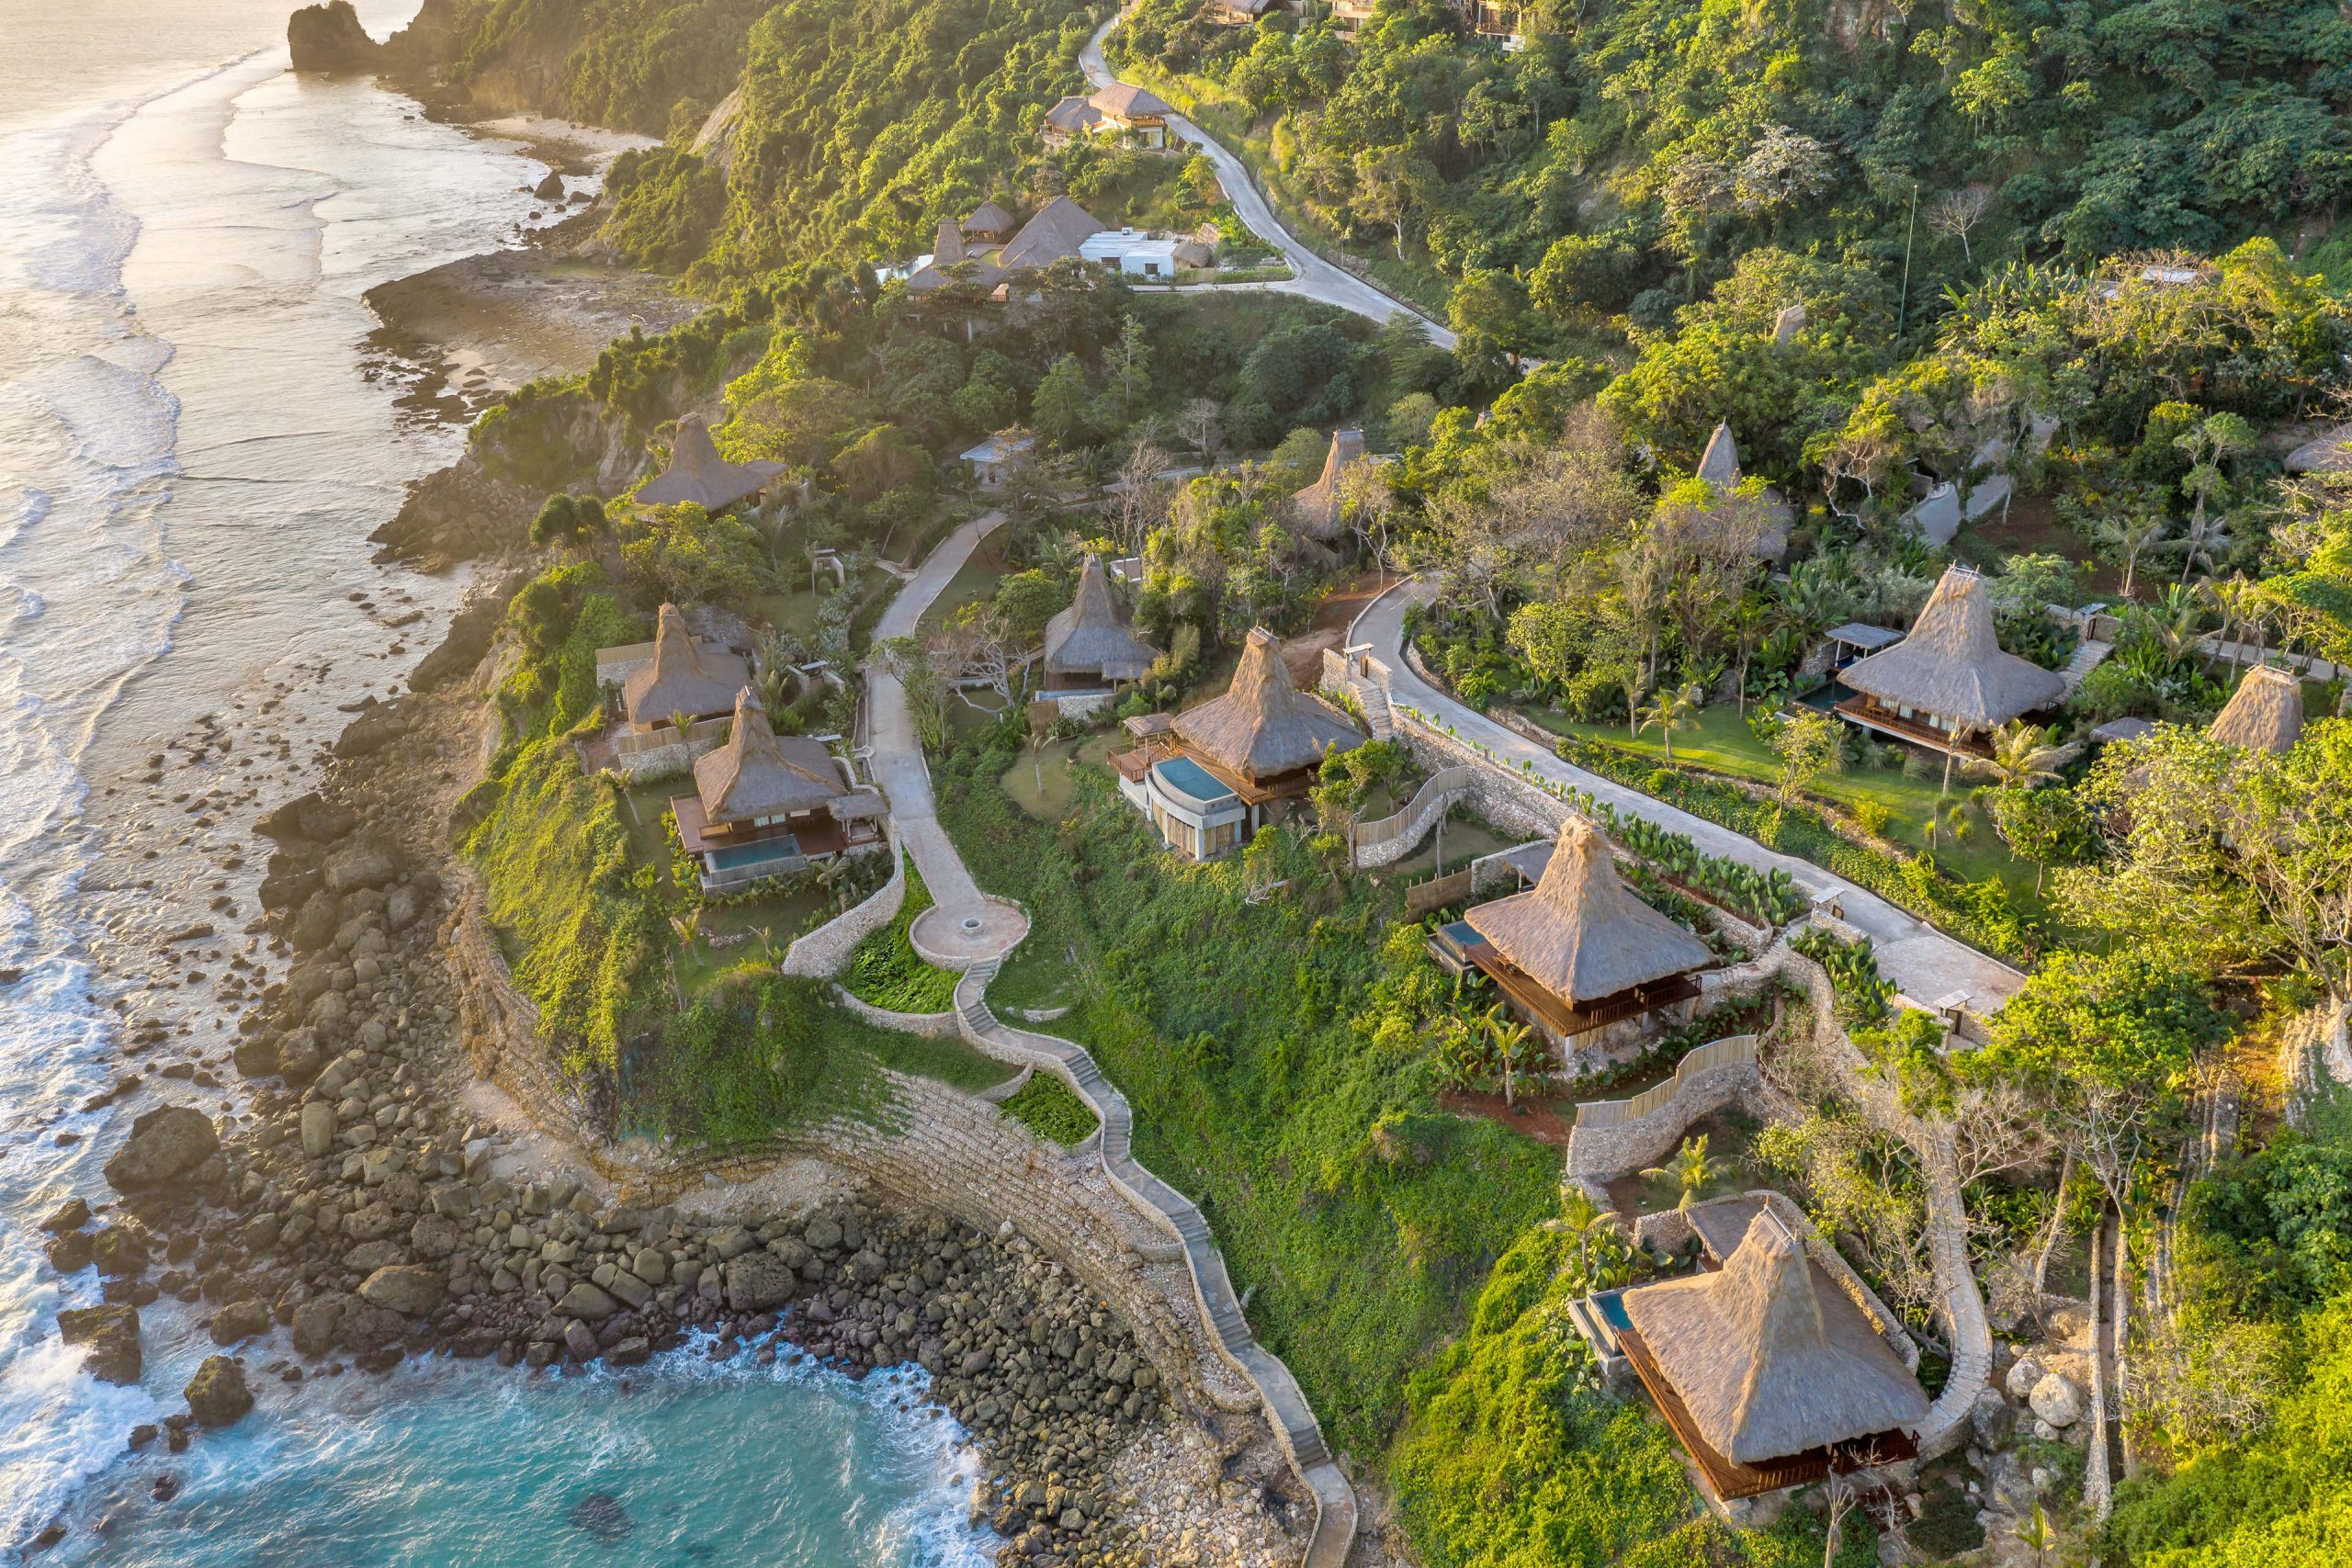 http://highend-traveller.com/lelewatu-resort-sumba-a-luxurious-yet-artistic-sanctuary-reopens-in-december-1st-2020/